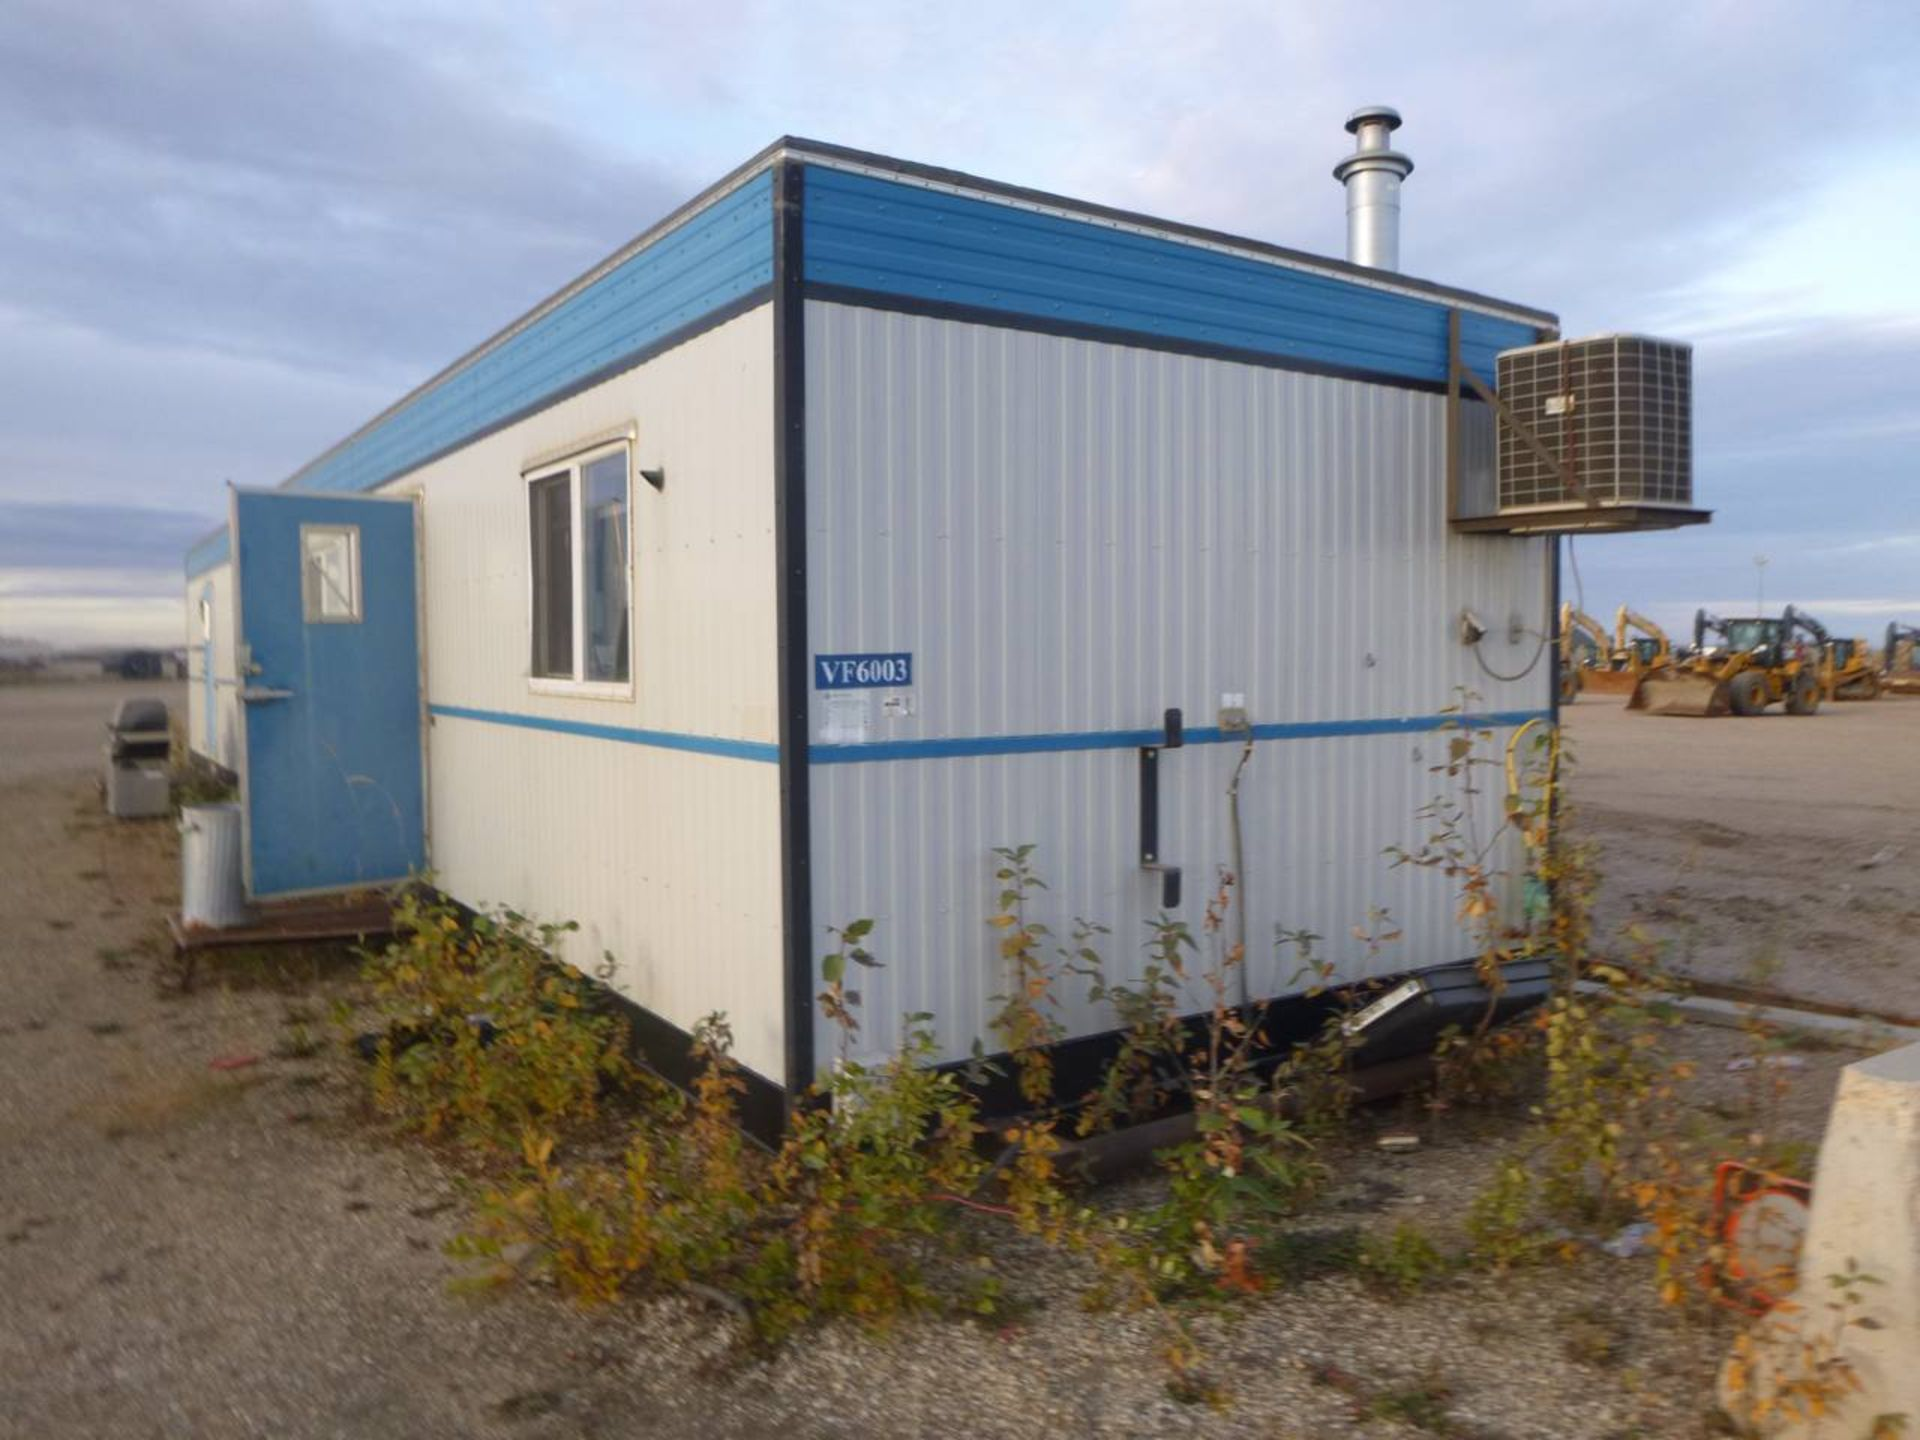 2007 Articor Structures Office Trailer - Image 5 of 6